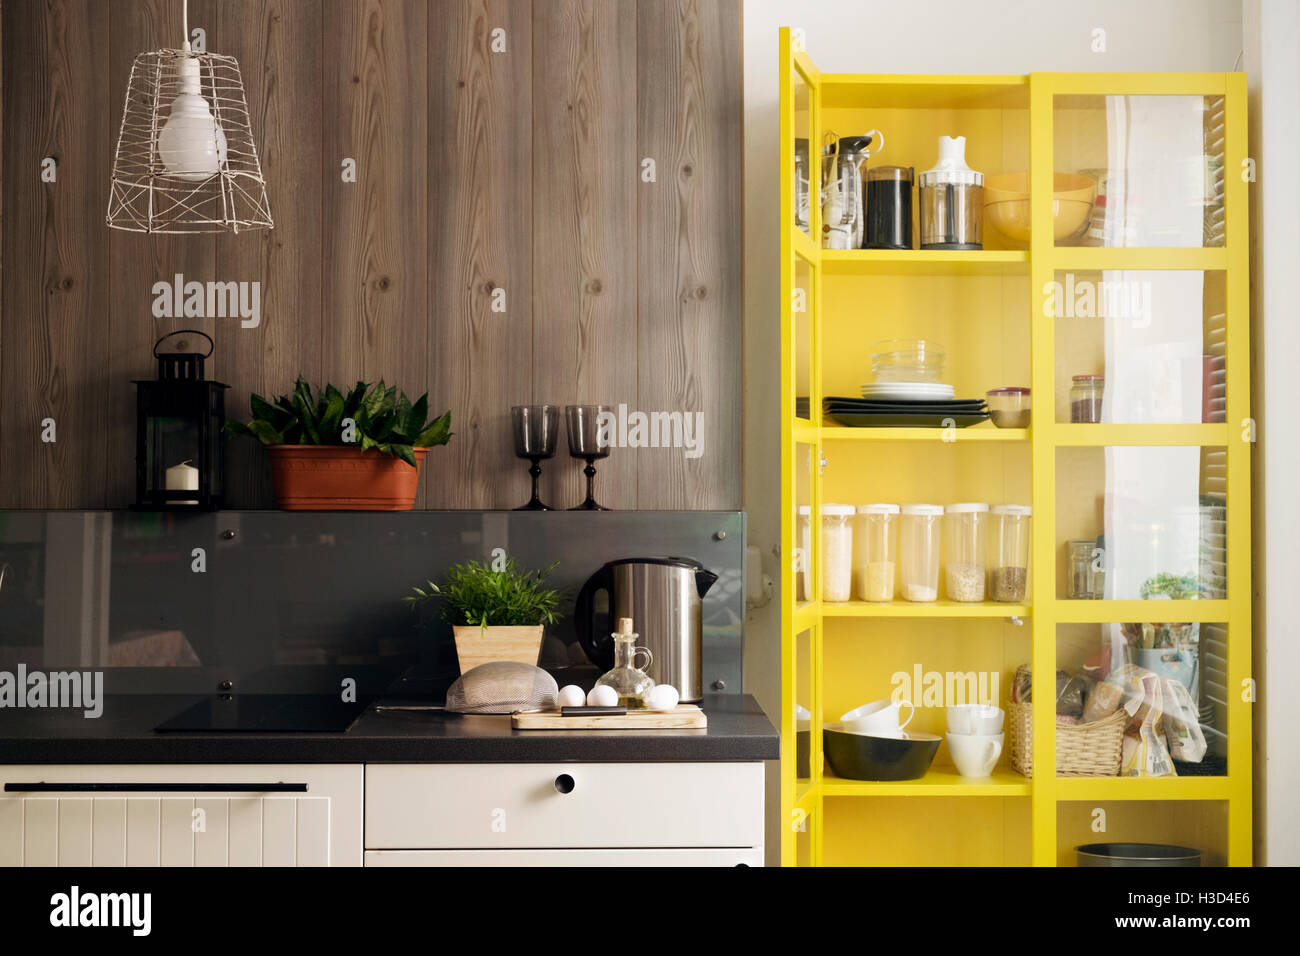 Yellow cabinet by kitchen counter at home - Stock Image